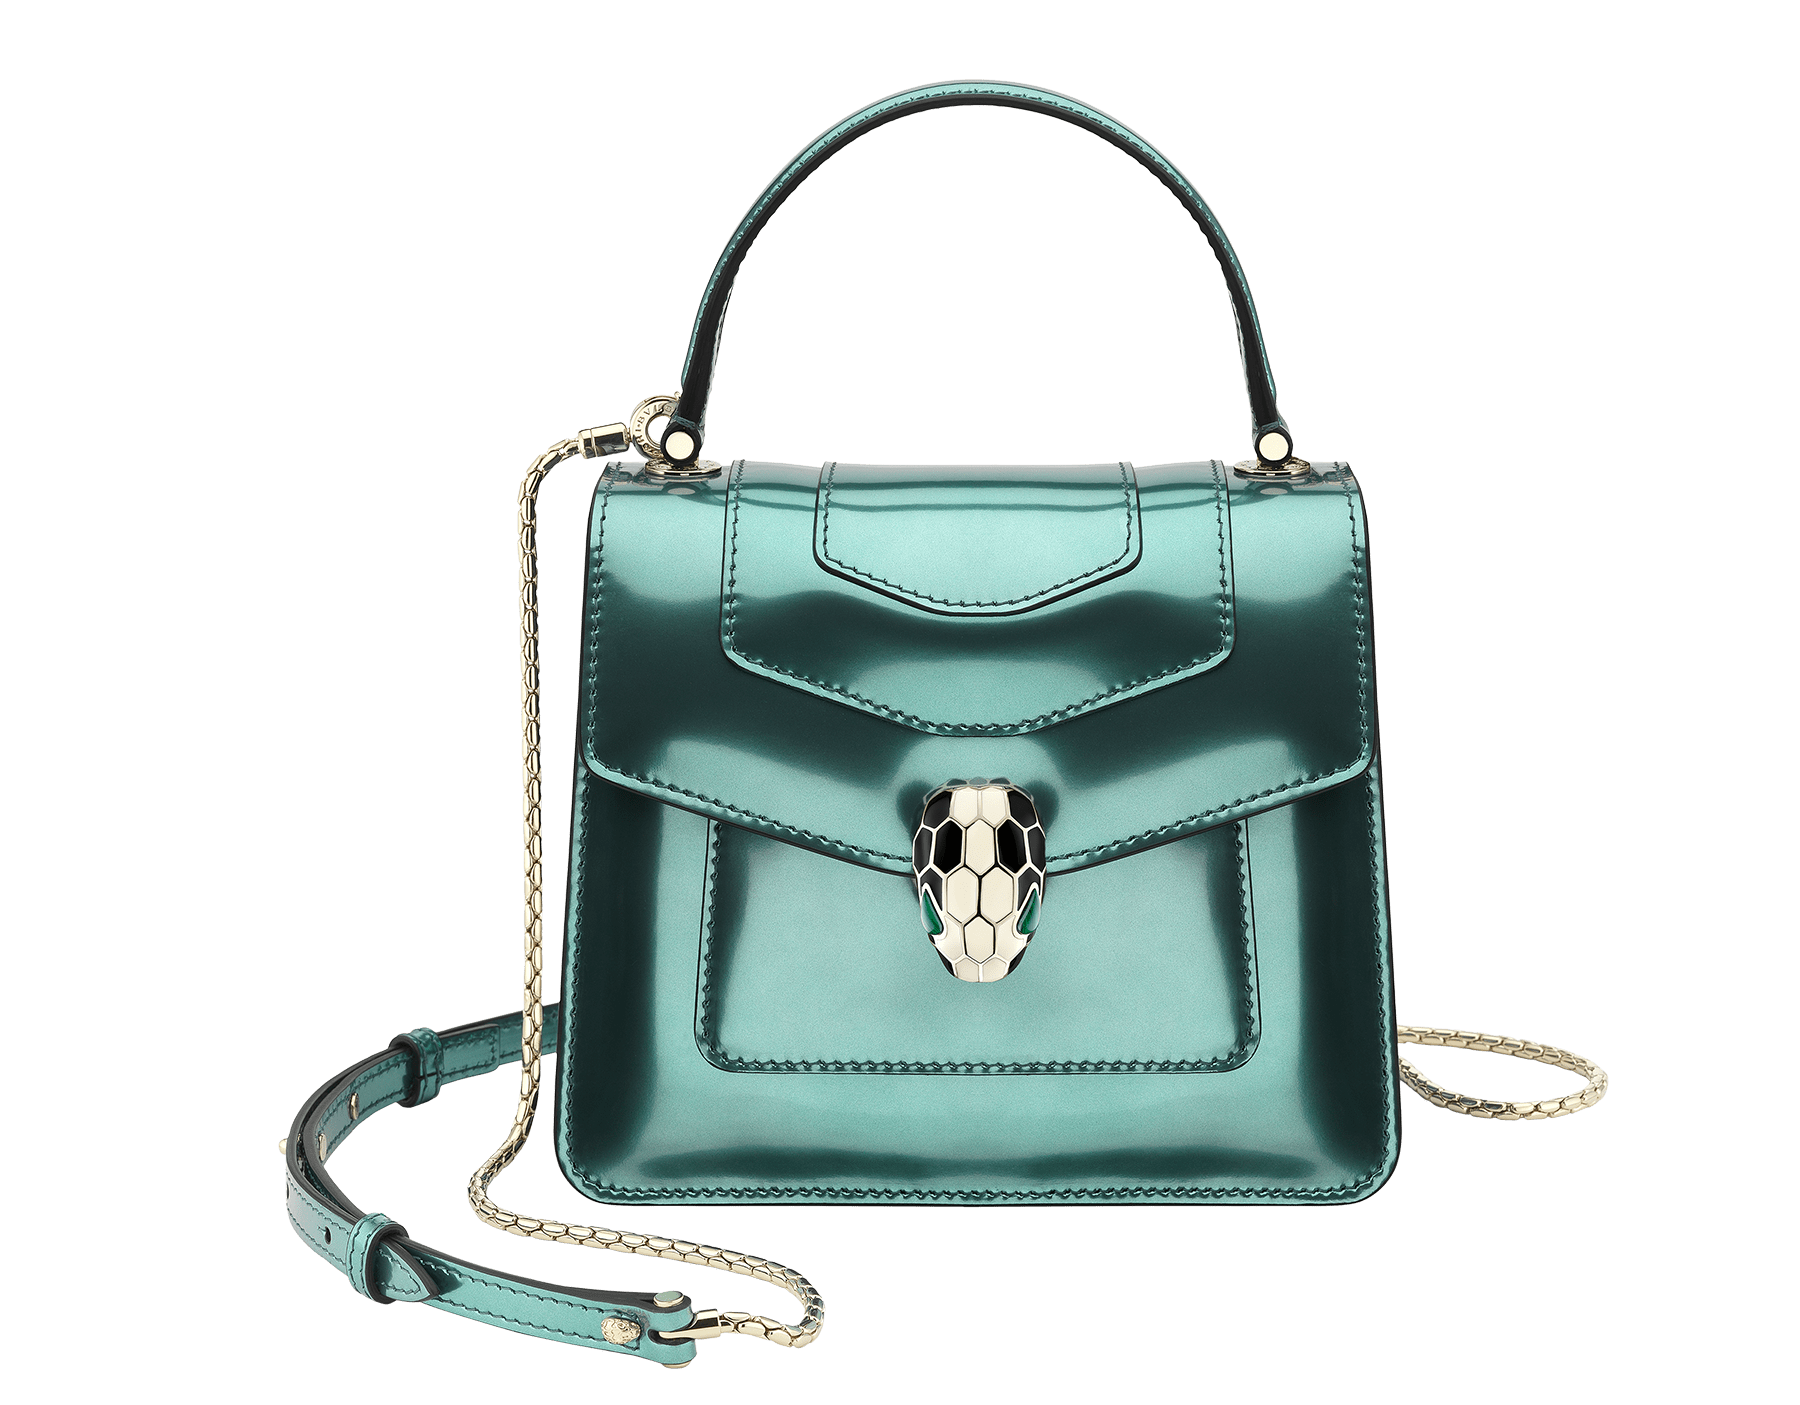 """""""Serpenti Forever """" crossbody bag in glacier turquoise brushed metallic calf leather. Iconic snakehead closure in light gold plated brass enriched with black and white enamel and green malachite eyes. 287045 image 1"""